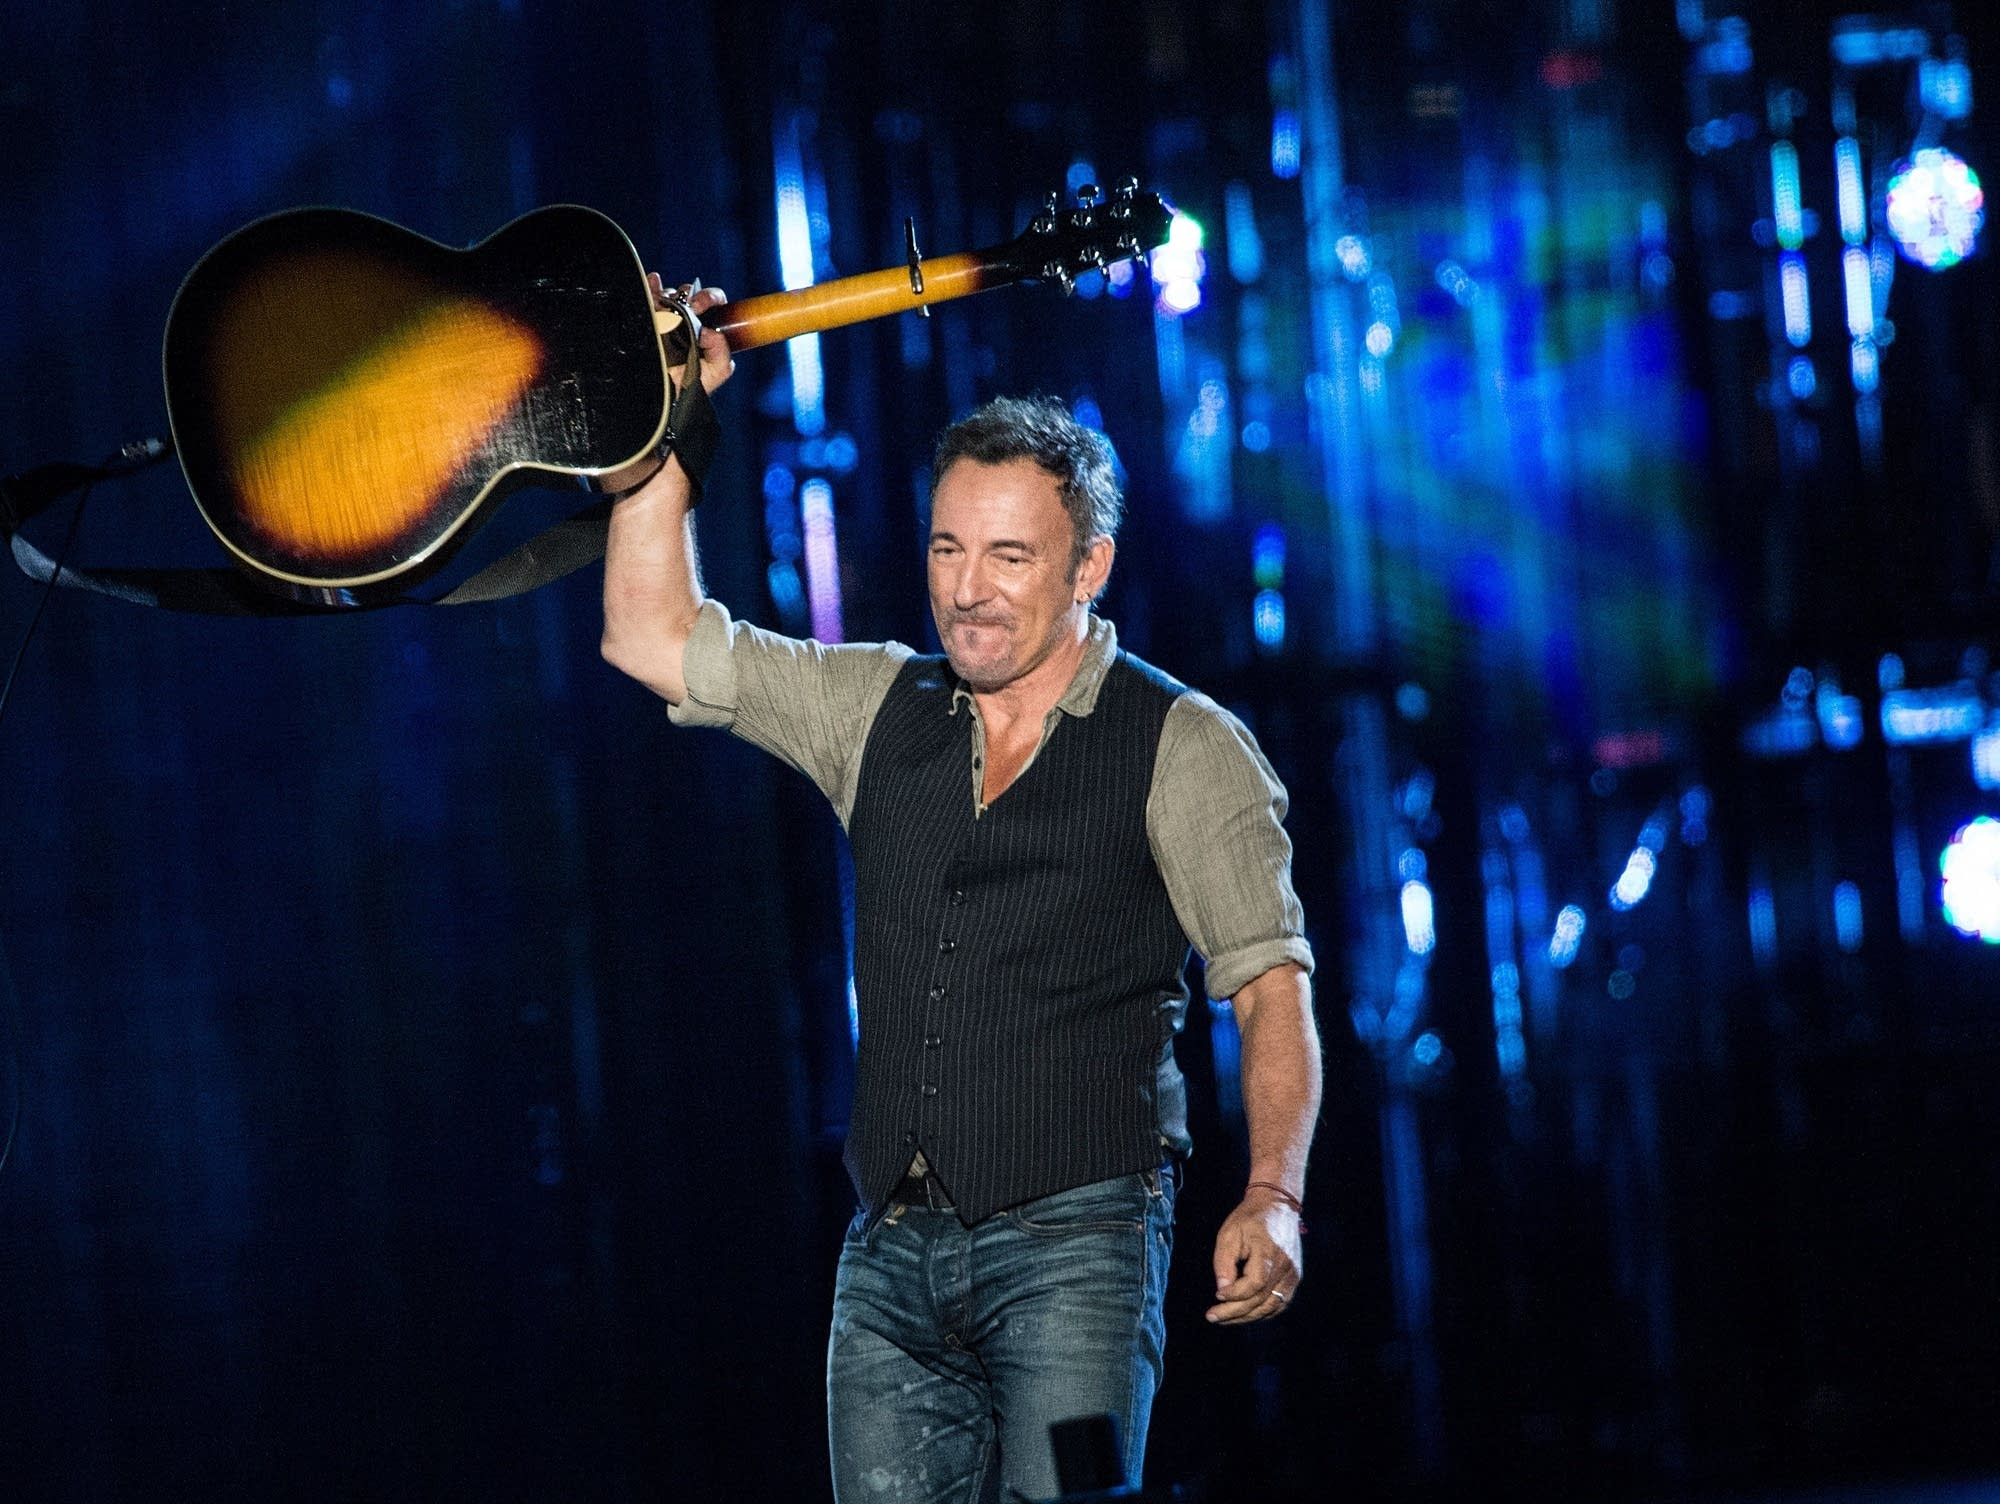 Bruce Springsteen at the Concert for Valor in Washington, D.C., 2014.